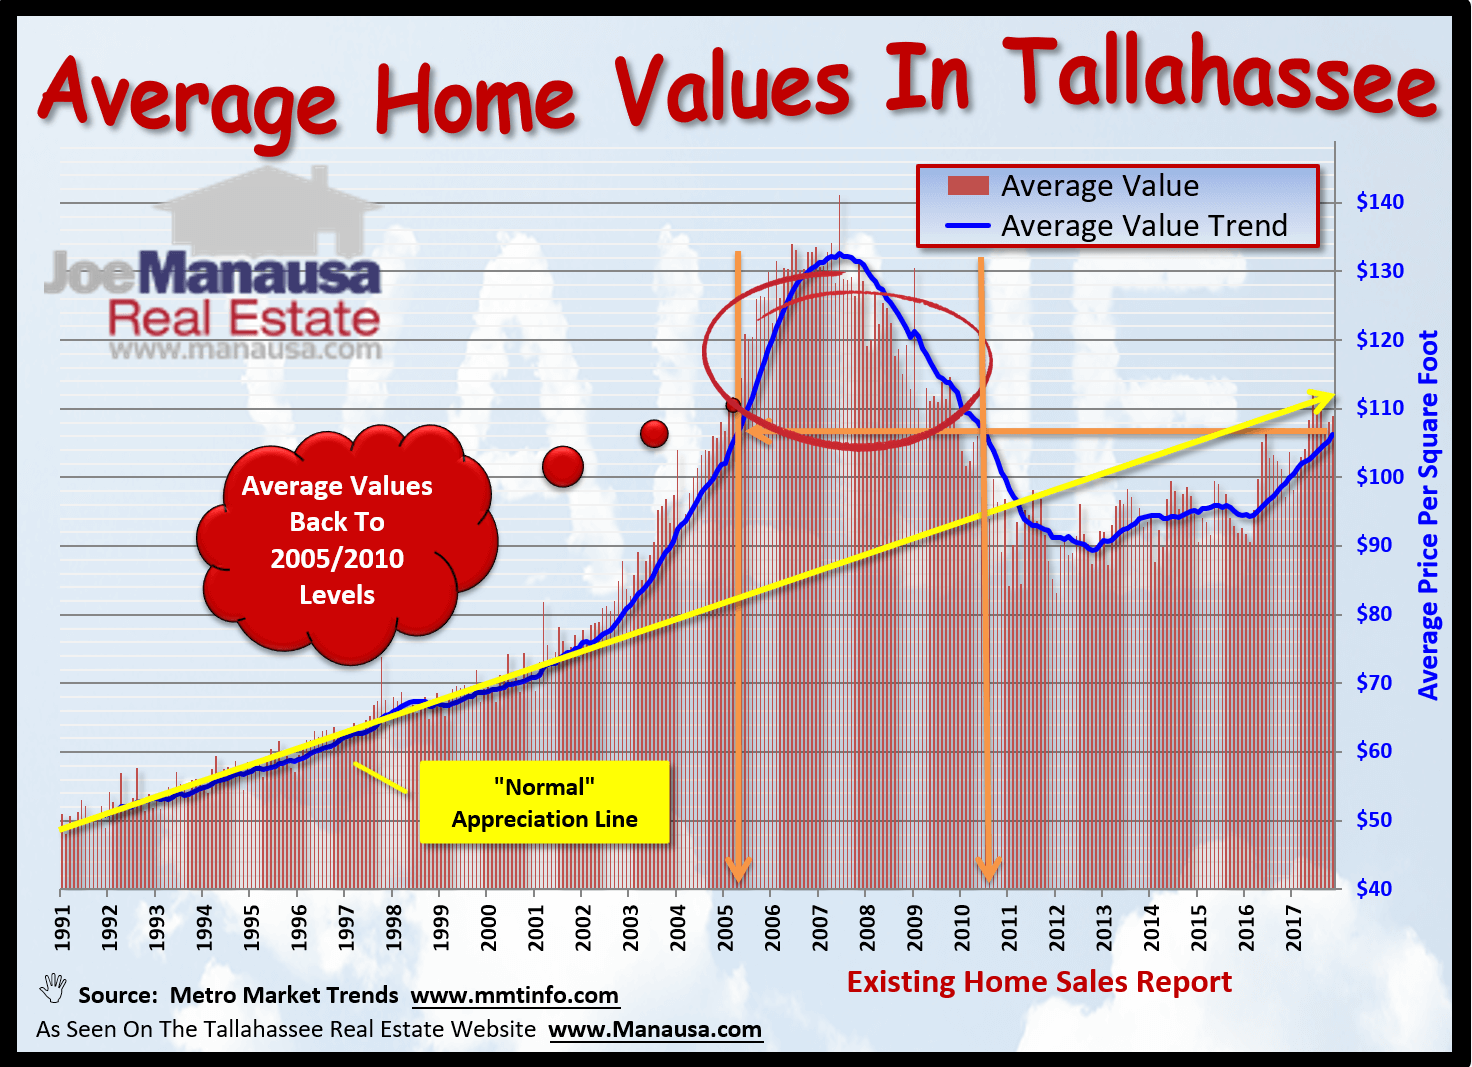 Average Home Values In Tallahassee, Florida